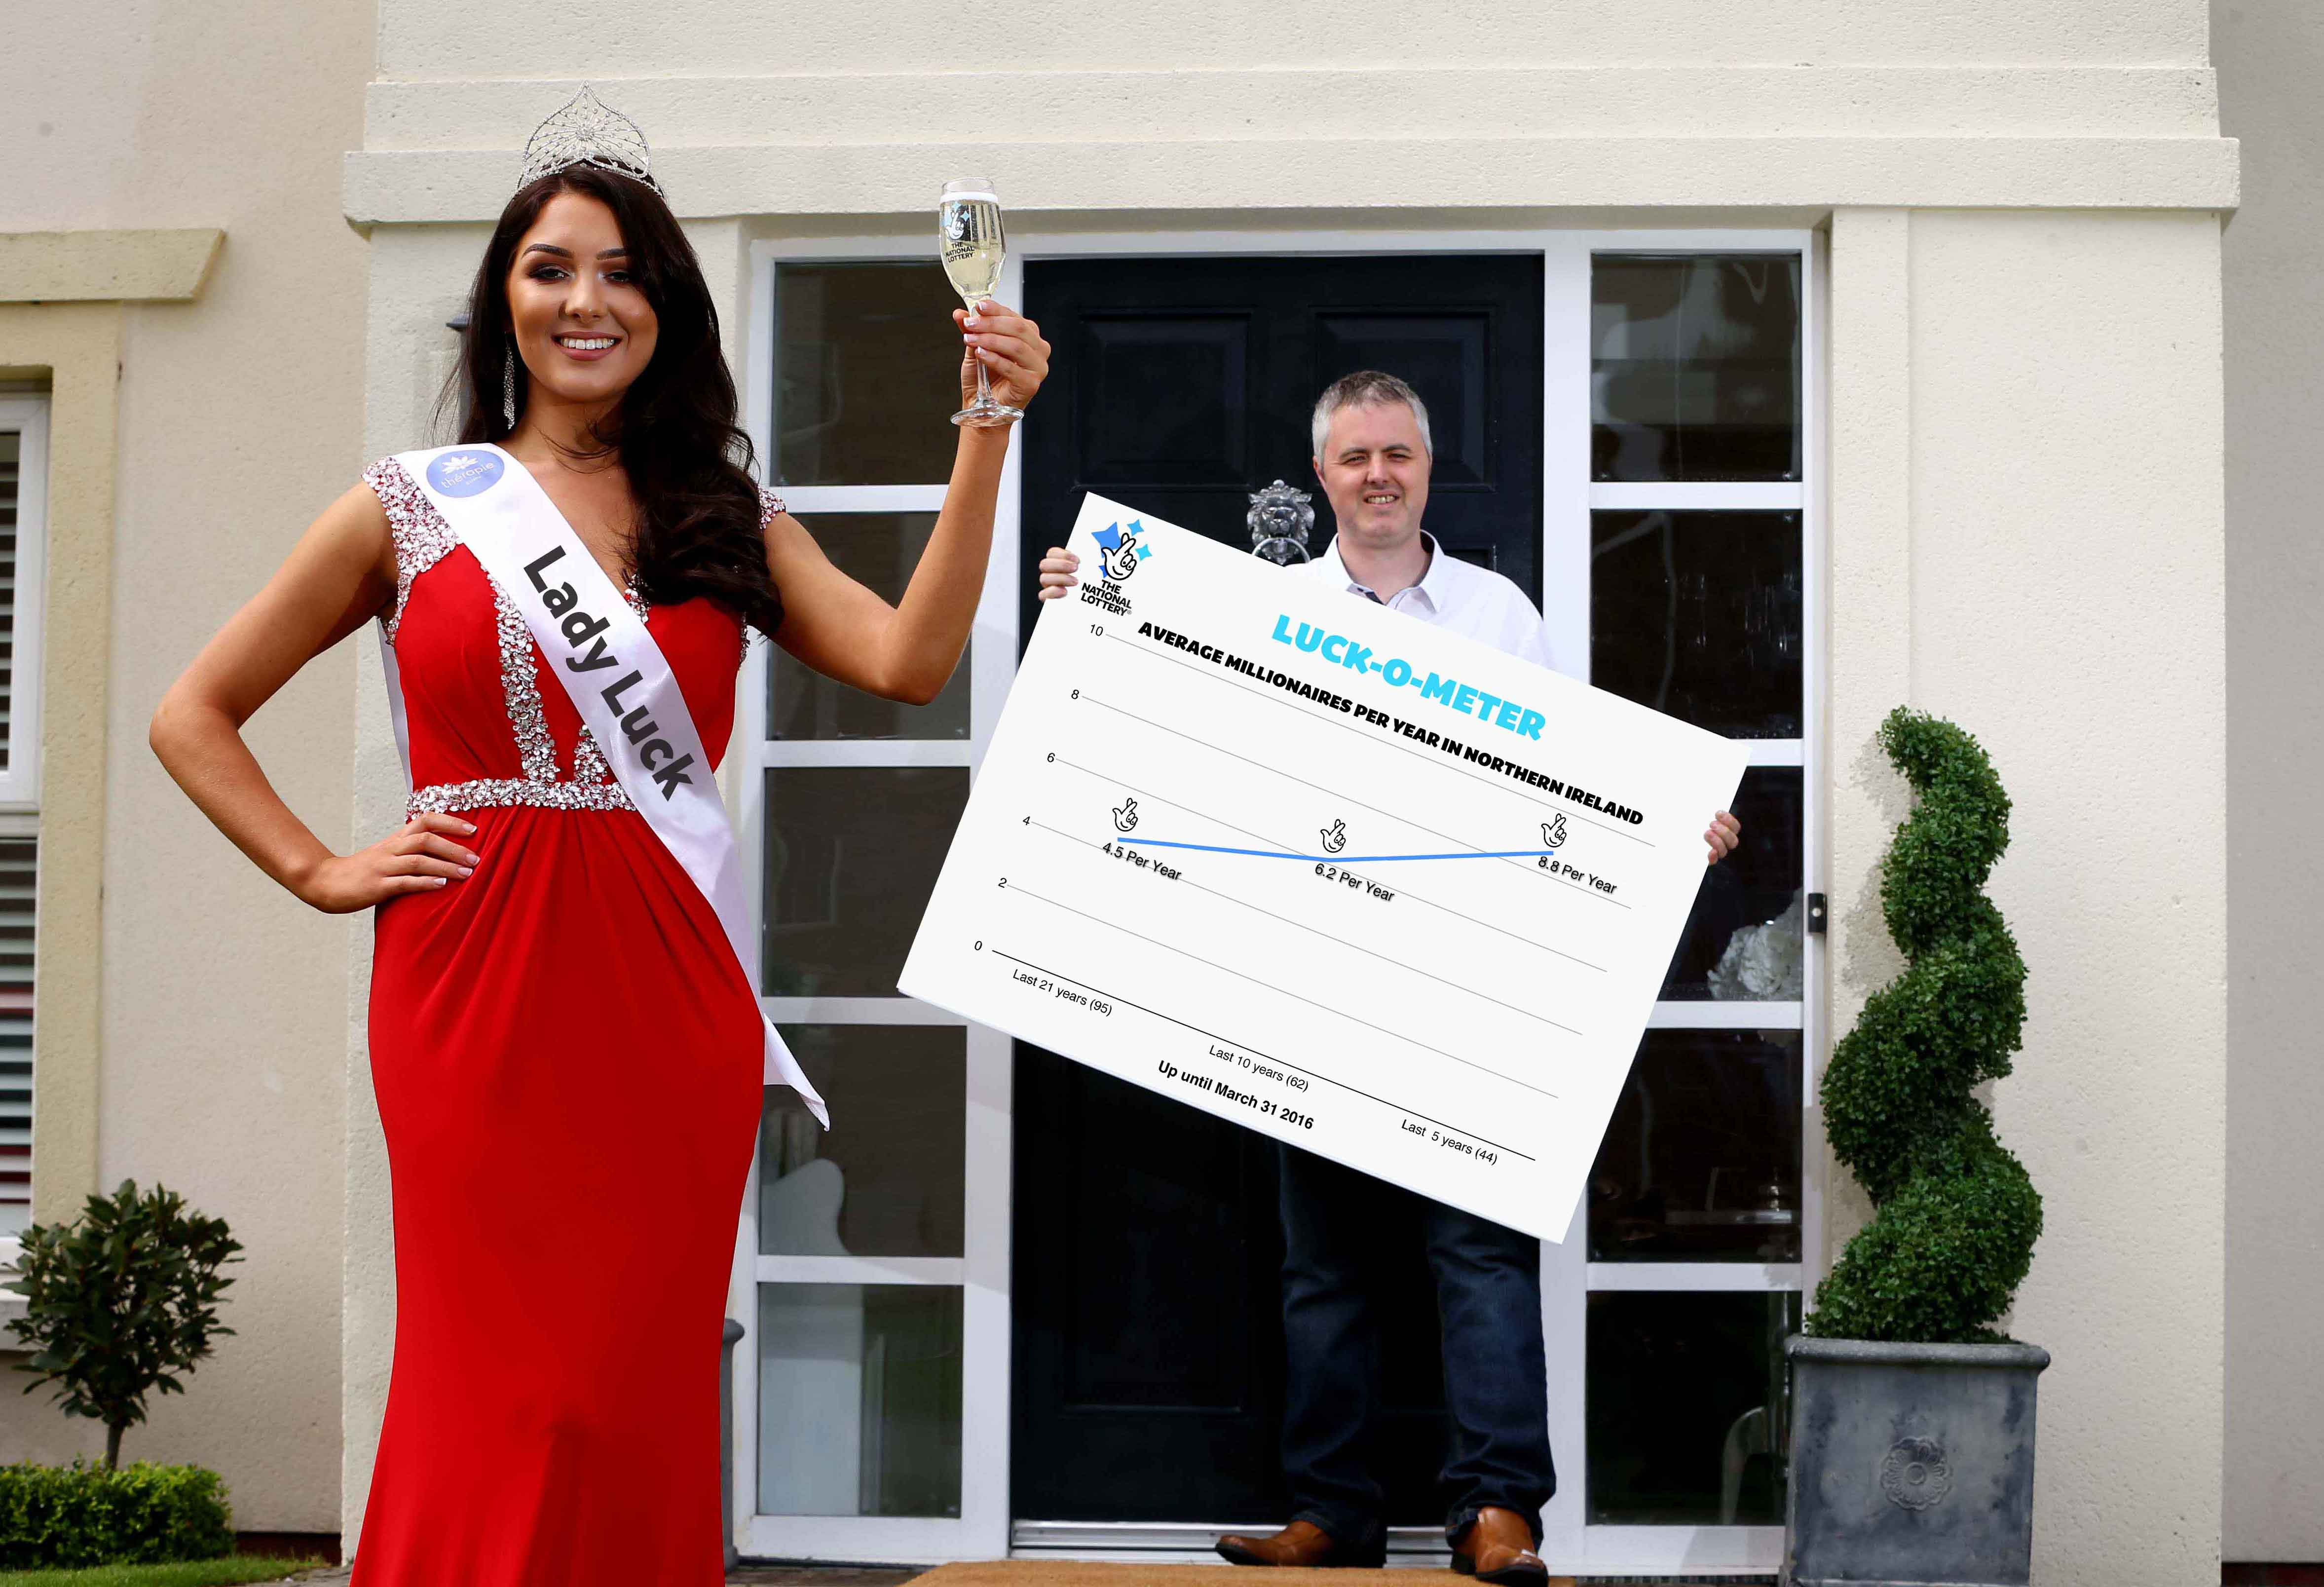 LUCK ON YOUR DOORSTEP: 'Lady Luck', aka newly crowned Miss Northern Ireland Emma Carswell, has certainly been shining on this part of the world in recent years after The National Lottery revealed that Northern Ireland is currently enjoying a lucky Lottery streak. Belfast man Martin McKenna (right), who won £1M on a National Lottery Scratchcard last year, is one of 95 millionaires that have been created here since the very first Lotto draw in 1994. However, more than half of Northern Ireland's Lottery millionaires (48 to be precise) have hit the jackpot in the last five years. Lottery mathematicians also revealed that someone in Northern Ireland has won a massive National Lottery prize of £50,000 or more EVERY 11.3 DAYS, on average, since 1994. In fact, in the more recent period from March 2013 until March 31, 2016, a prize of more than £50k has been won in Northern Ireland EVERY 7.7 DAYS on average - with a total of 146 'high tier' winners in this 37 month period. It isn't just individuals winning big. Last year alone, more than £40 million of National Lottery funding was awarded in Northern Ireland with a total of 957 Lottery grants providing a vital boost to arts, sports and heritage projects alongside community groups helping those most in need.